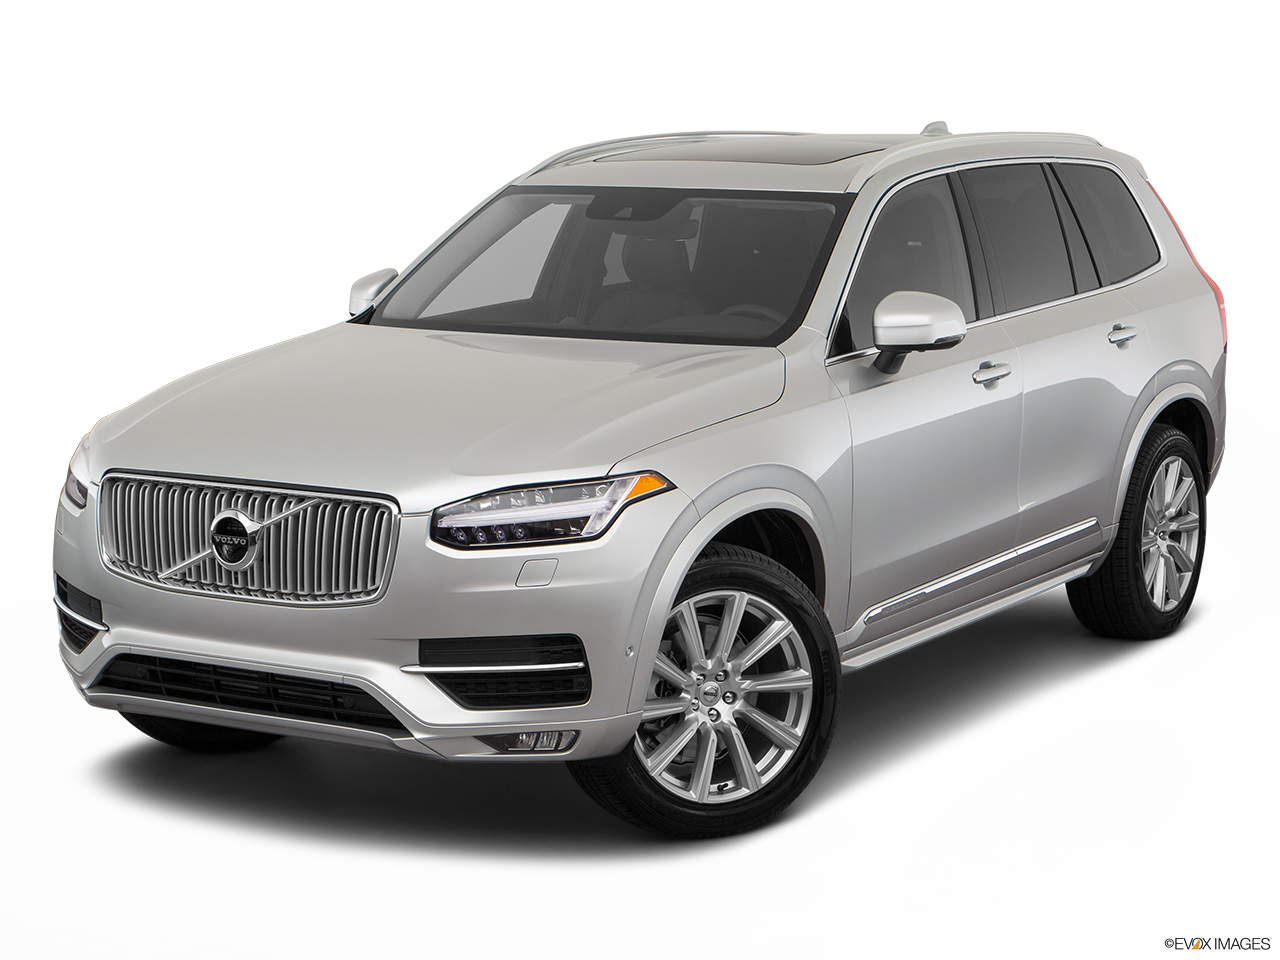 2019 Volvo XC90  T6 Inscription Front angle view.